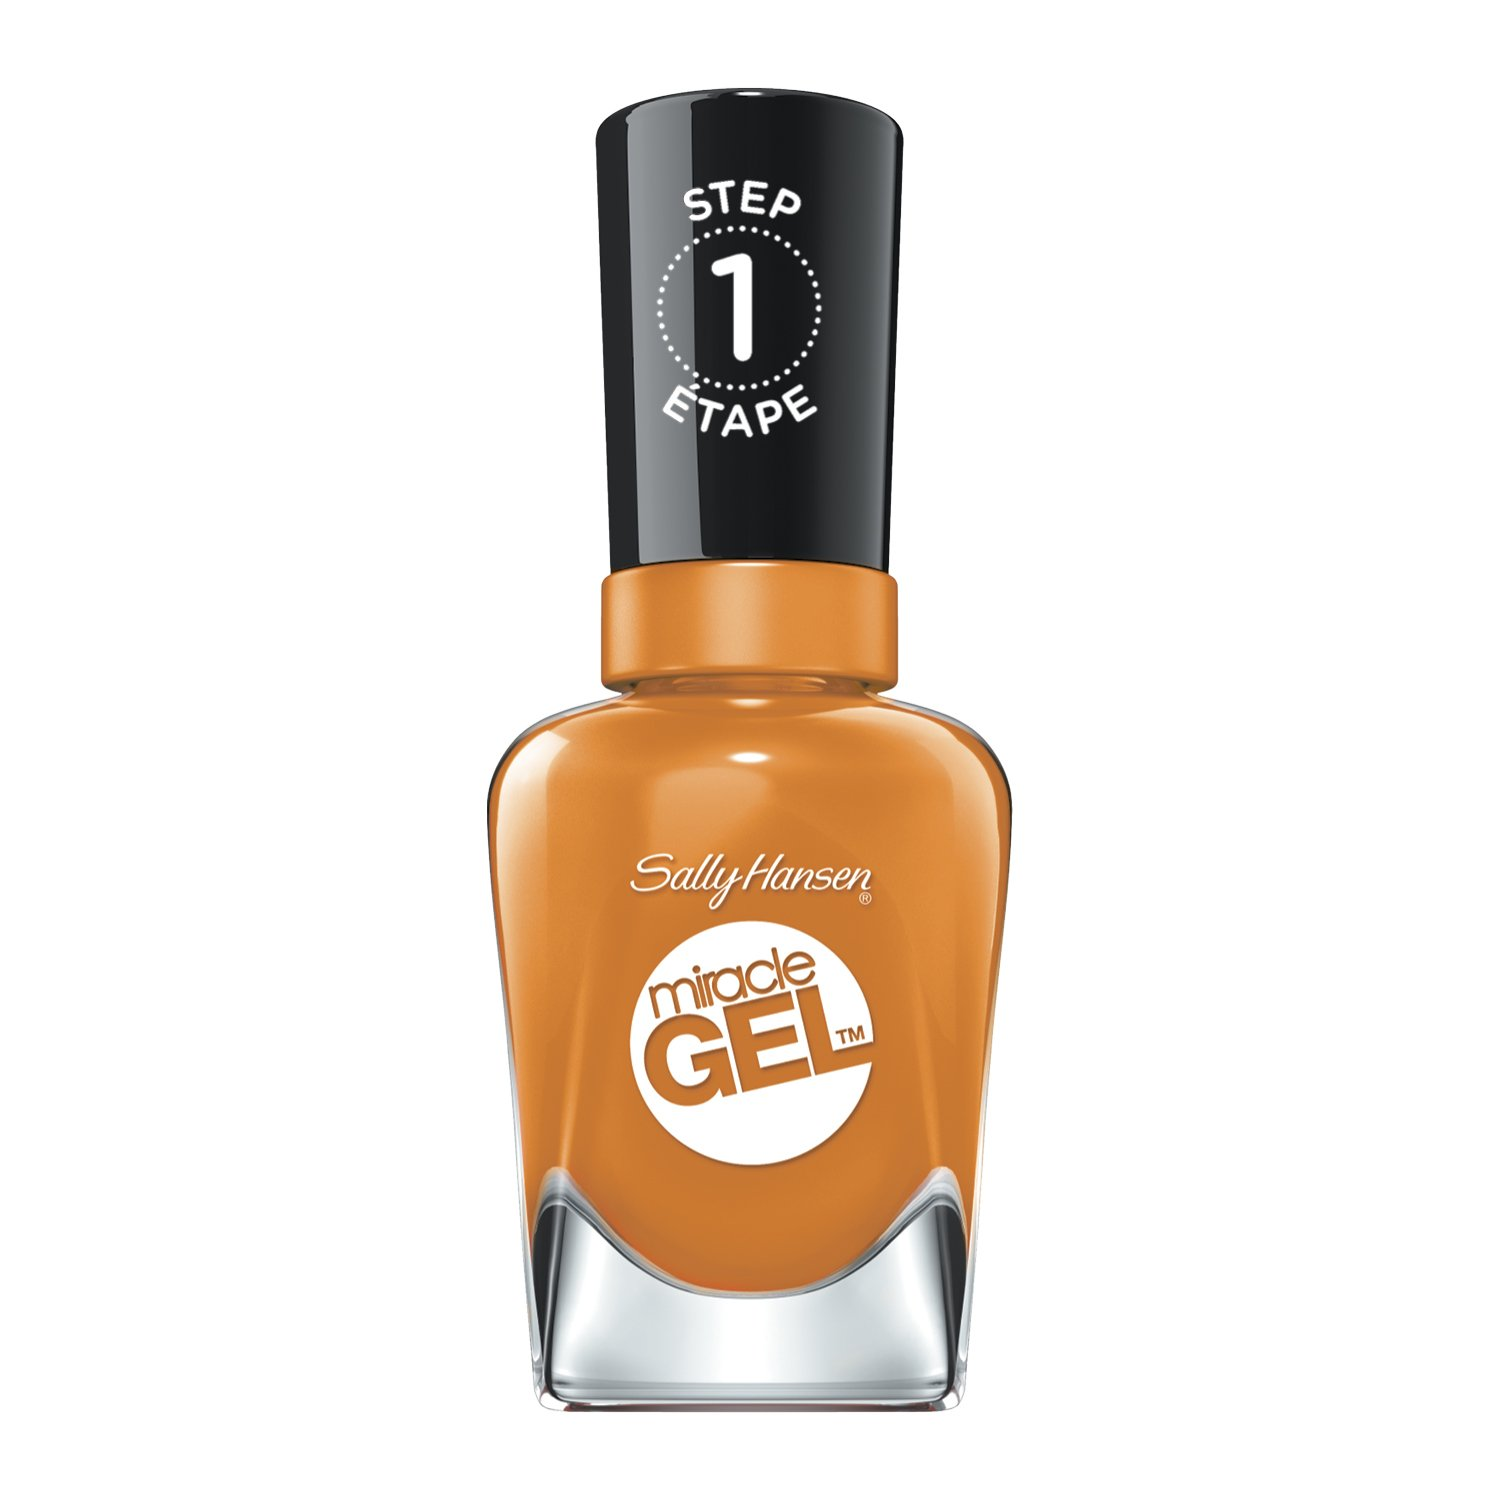 Sally Hansen Miracle Gel, Short Cir-Cute, 0.5 Ounce